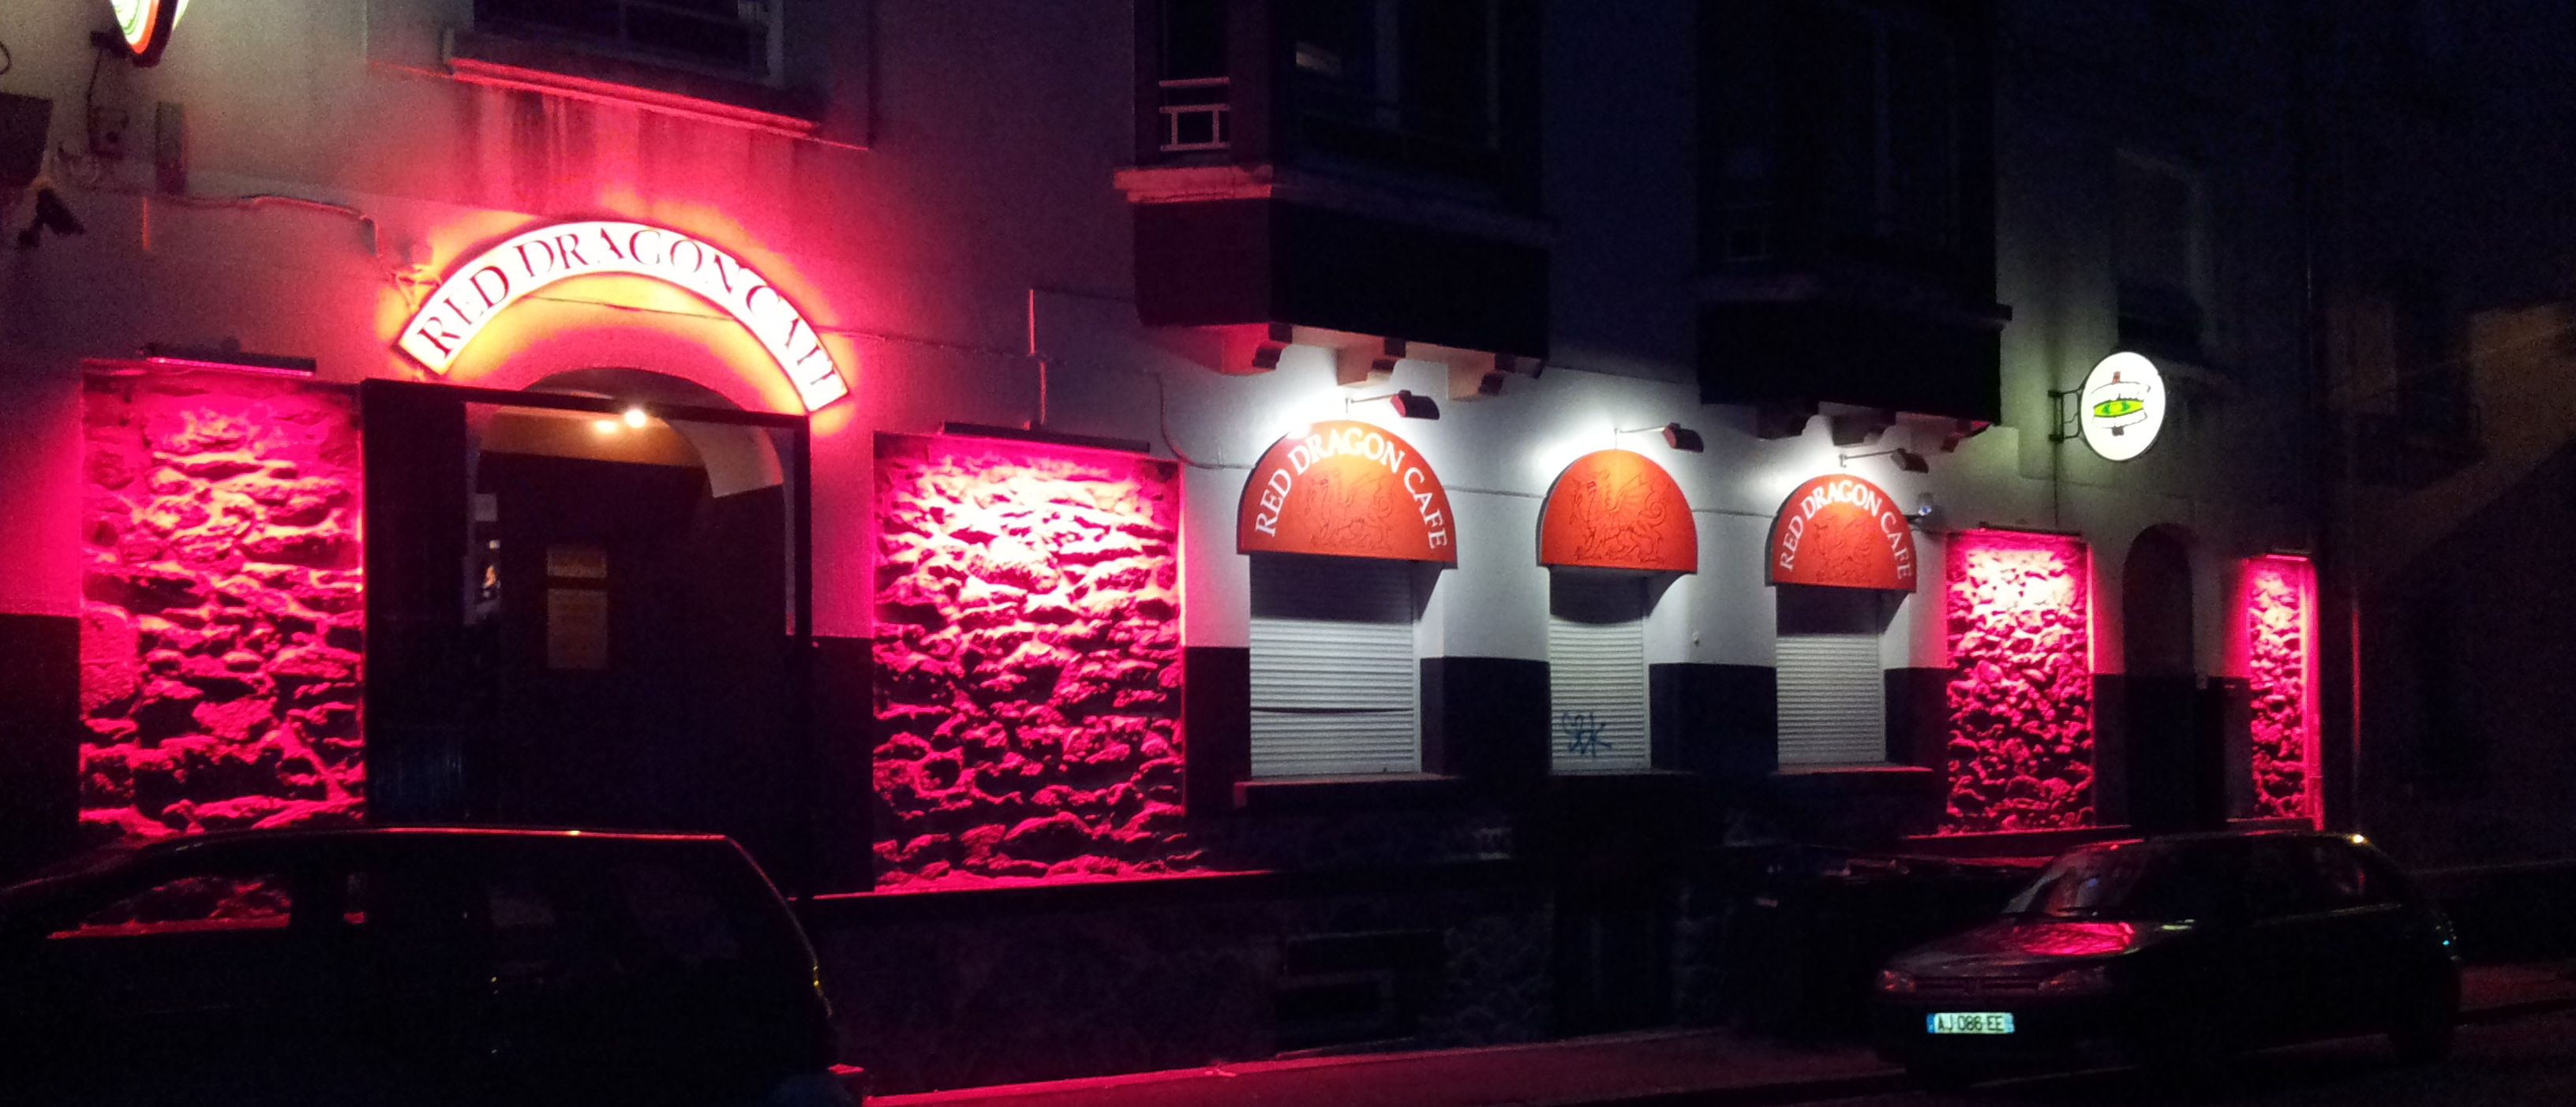 Red Dragon Cafe-1235X530